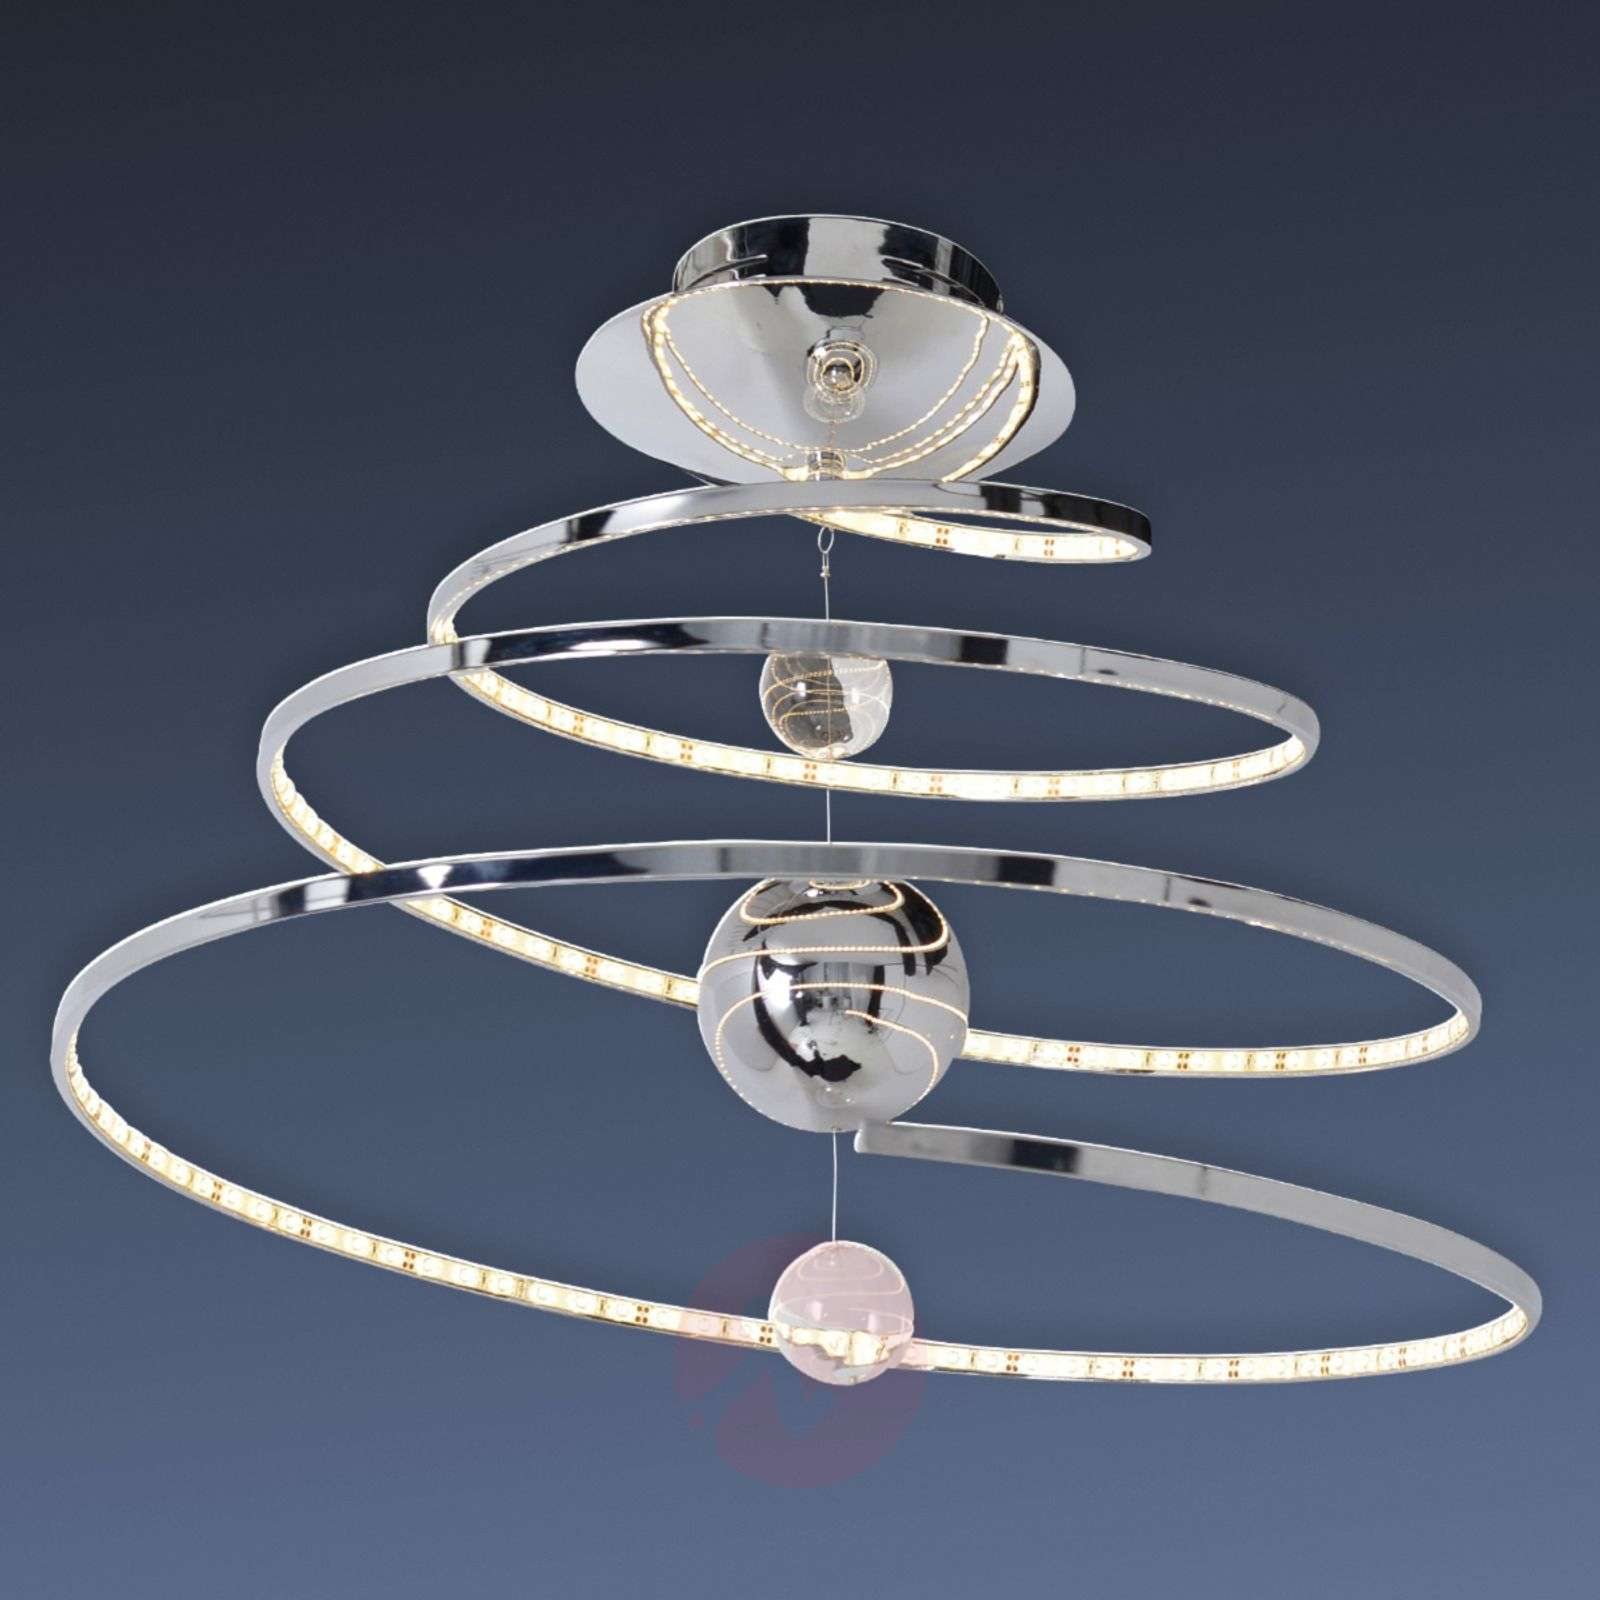 Spiral shaped led ceiling light universe lights spiral shaped led ceiling light universe 7000764 01 aloadofball Gallery